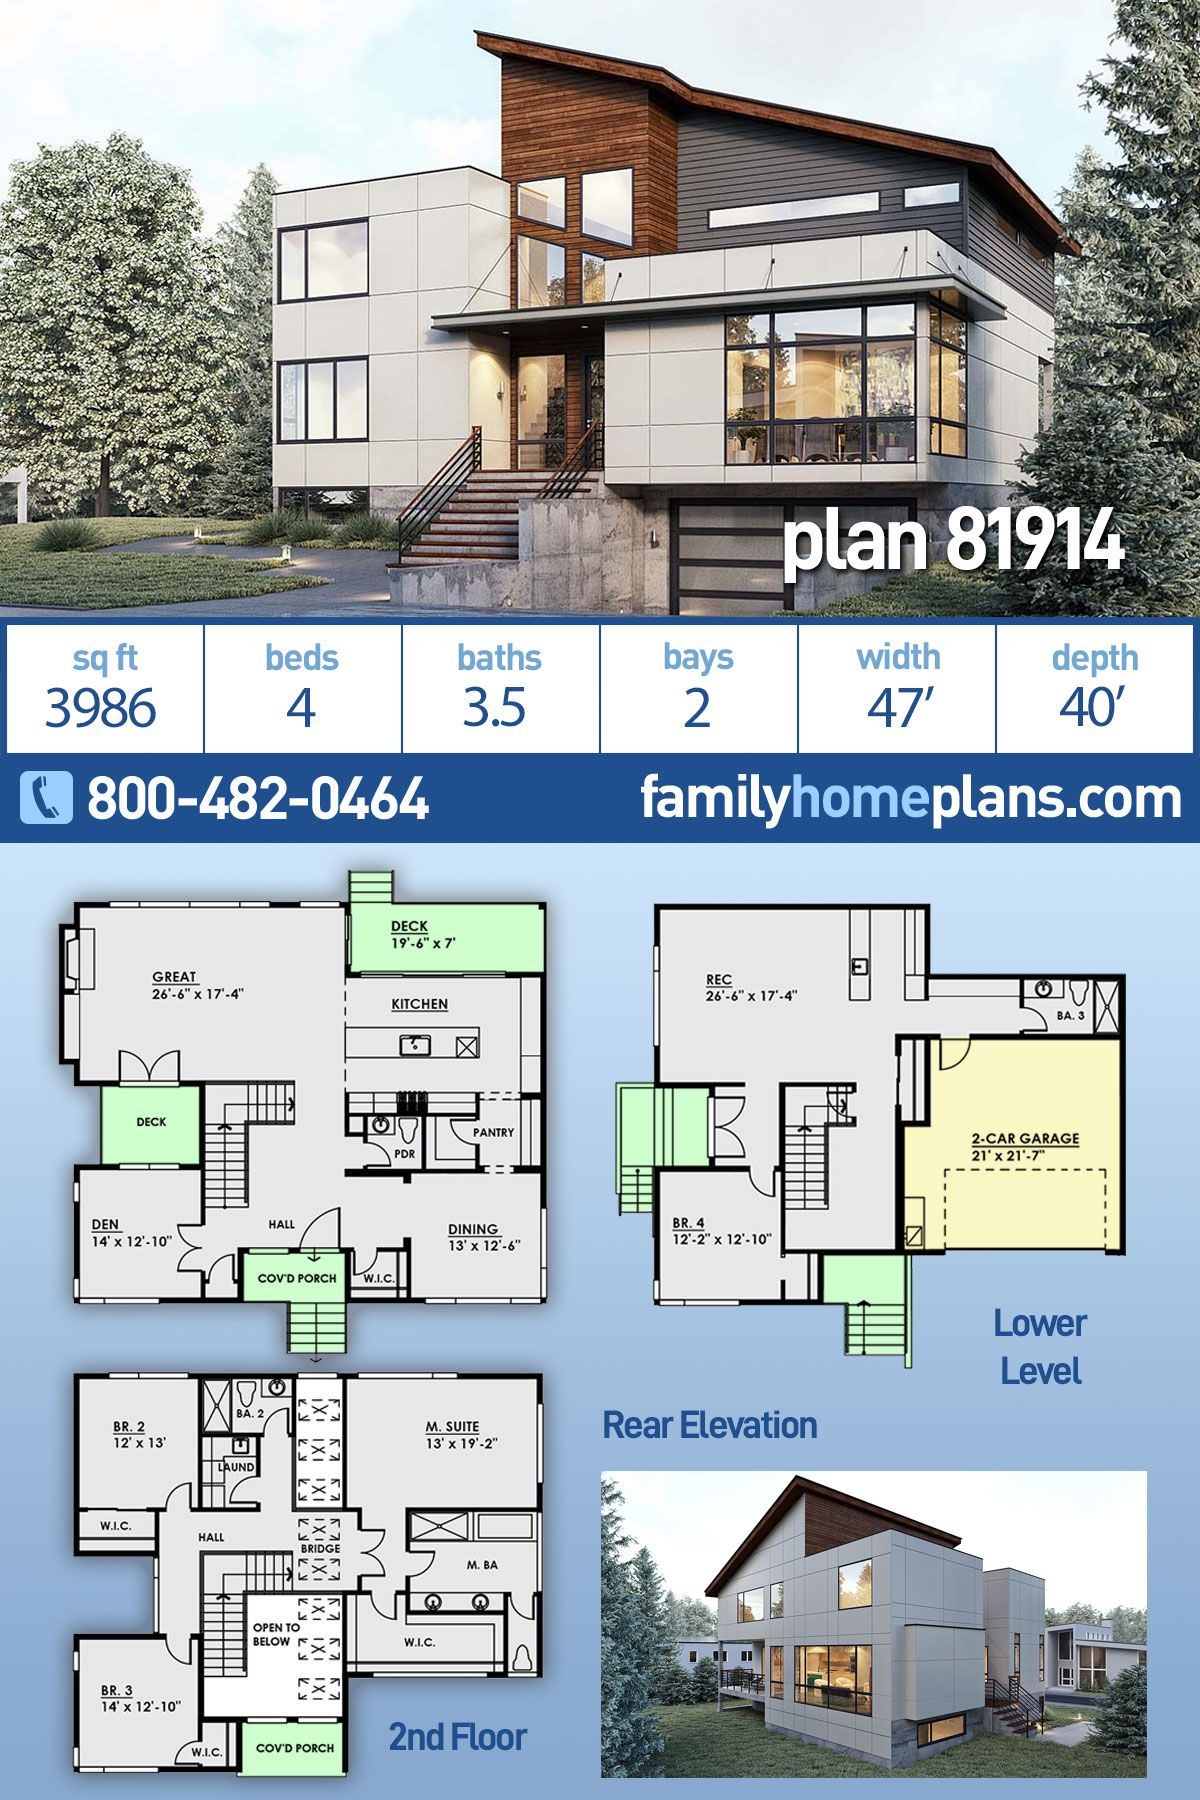 Modern Style House Plan 81914 With 4 Bed 4 Bath 2 Car Garage Modern Style House Plans House Plans Modern House Plans